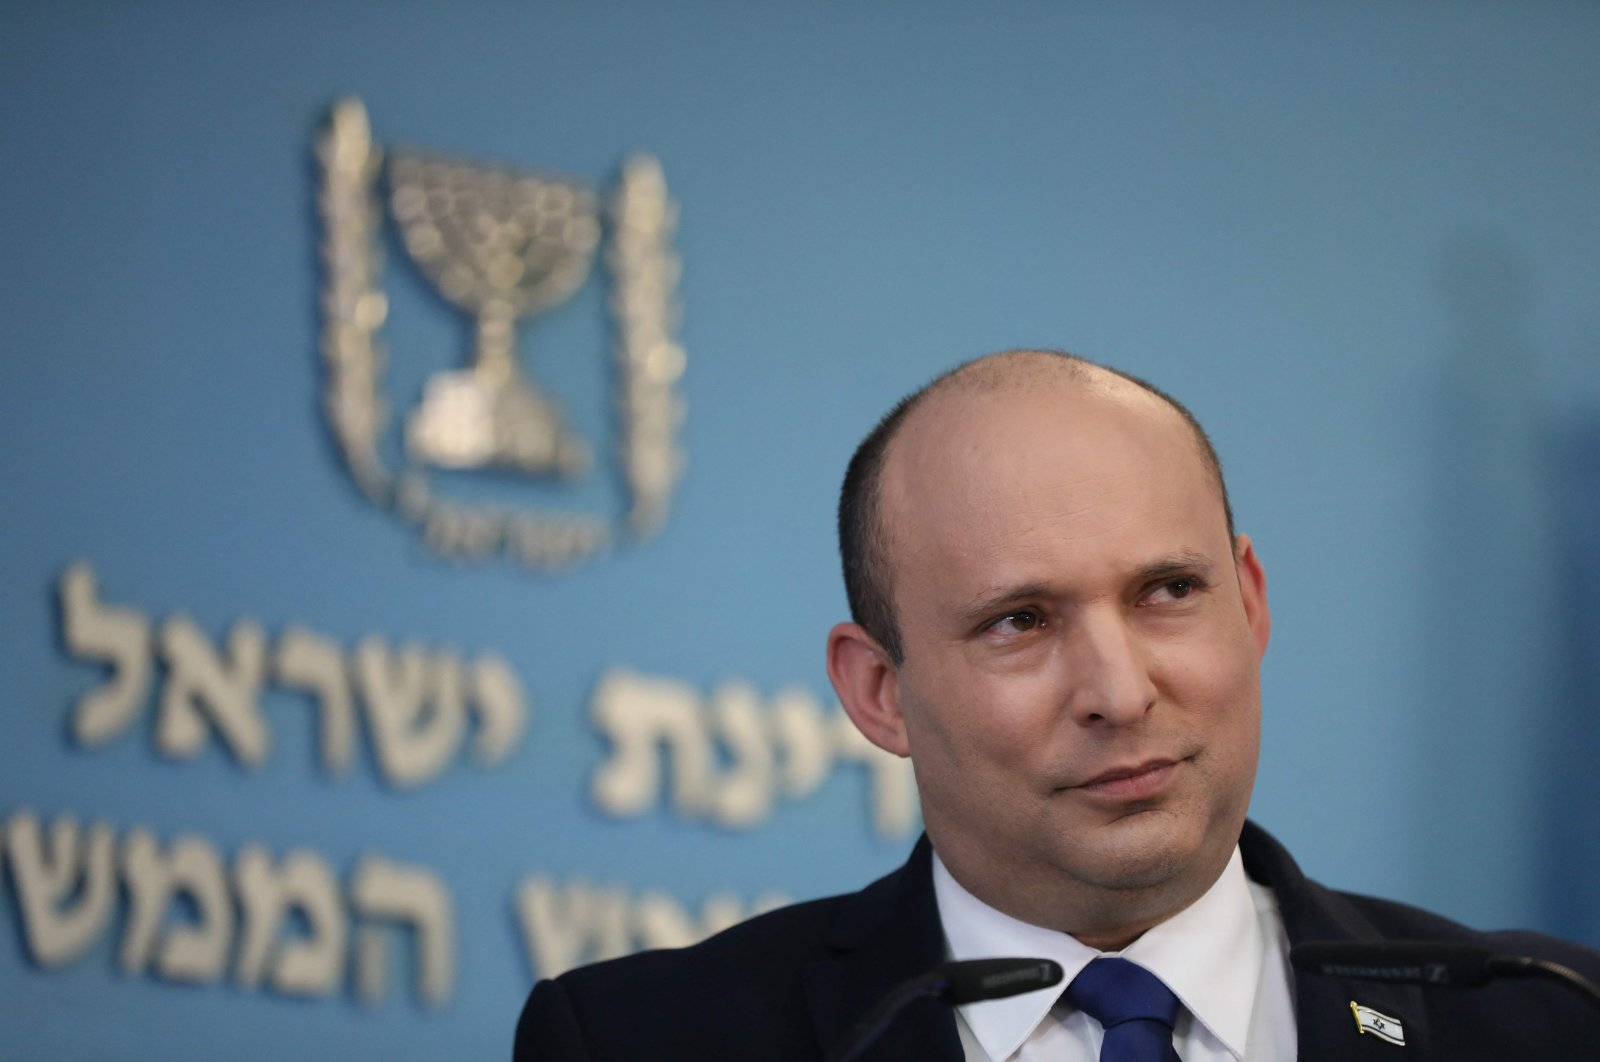 Israeli Prime Minister Naftali Bennett briefs the media about the COVID-19 pandemic health situation in the country, Jerusalem, Israel, Aug. 18, 2021. (AFP Photo)